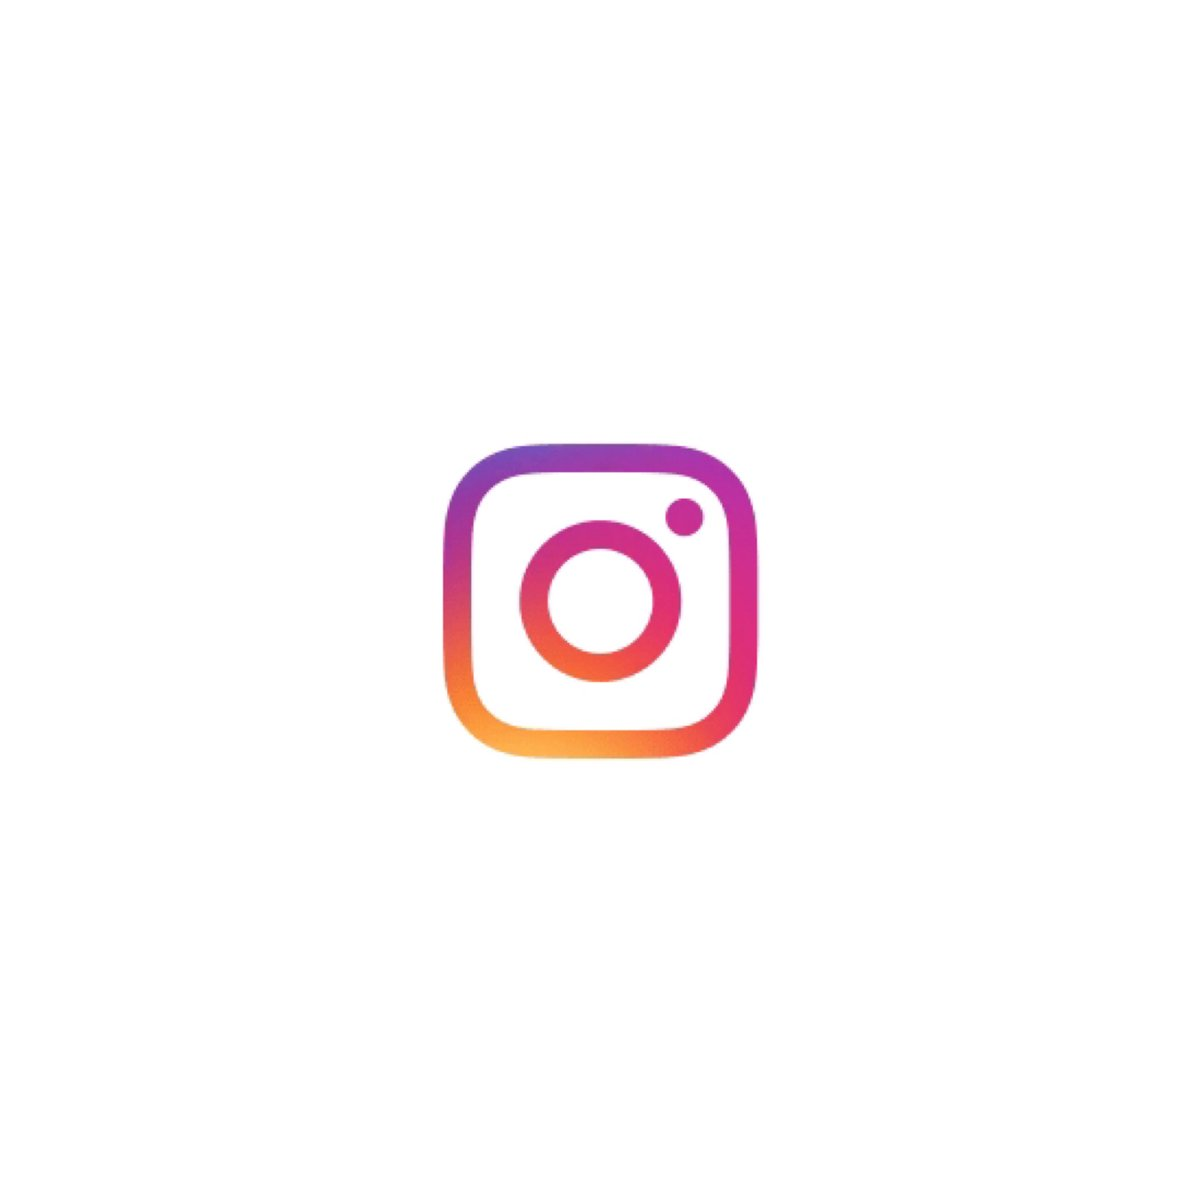 Instagram is working on Scenes, a TikTok-like video editing/remixing tool for Stories #instagram #tiktok #clips #shortvideos #technews #latestupdates #apple #samsung #iphone #shortvideos #theflintx #siliconvalley #newyork #gaming #instagrammers #instagramblogs #funvideos